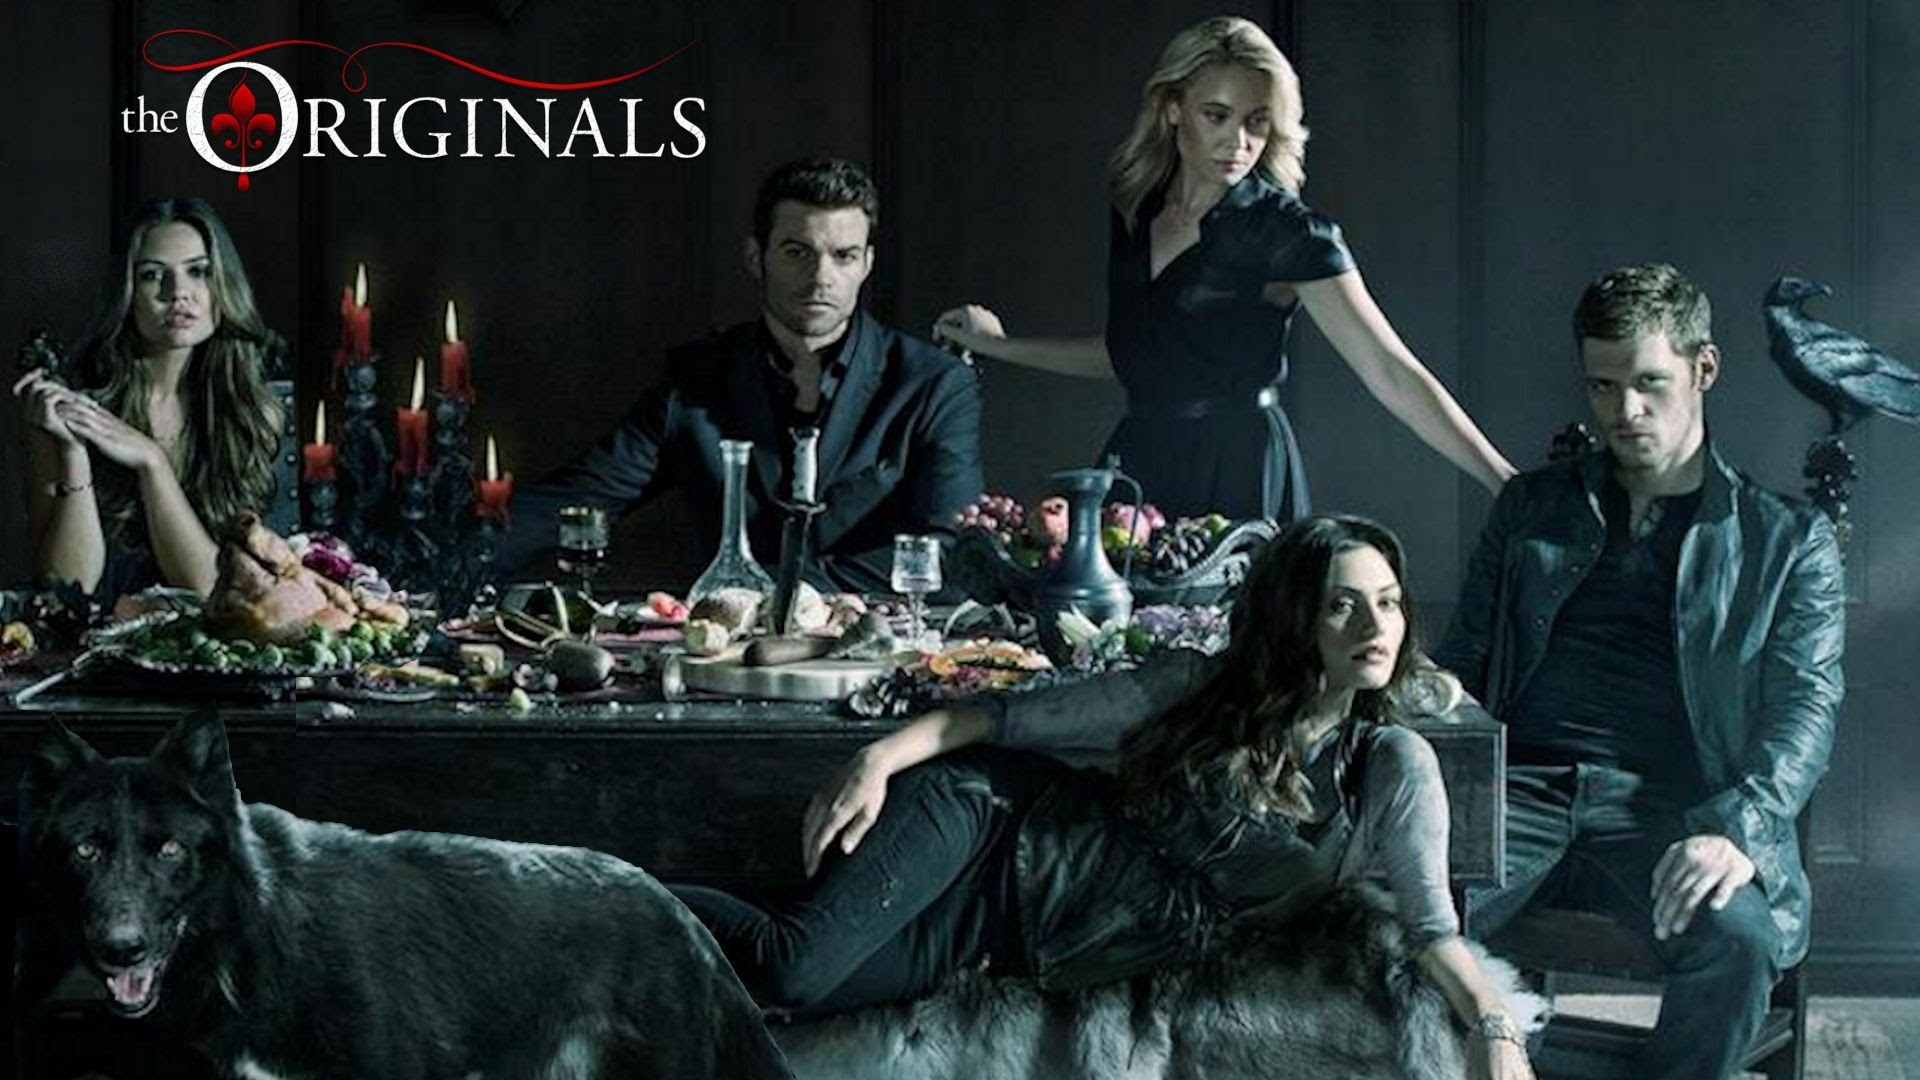 hot sale online b7a76 526dd 1920x1080 The Originals - S3 E18